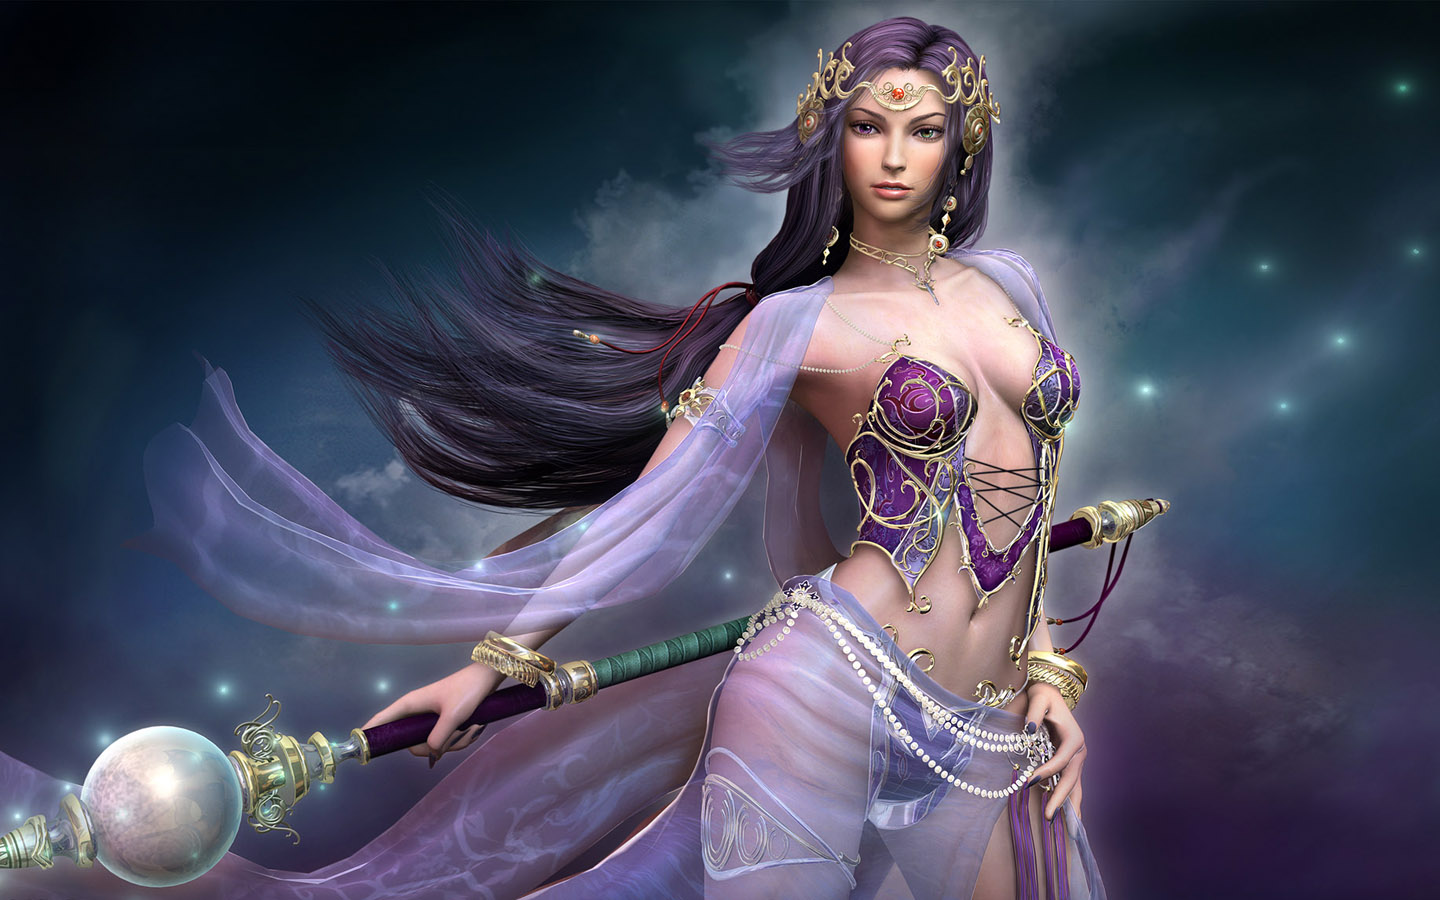 FOR MORE FANTASY WARRIOR WALLPAPER CLICK HERE